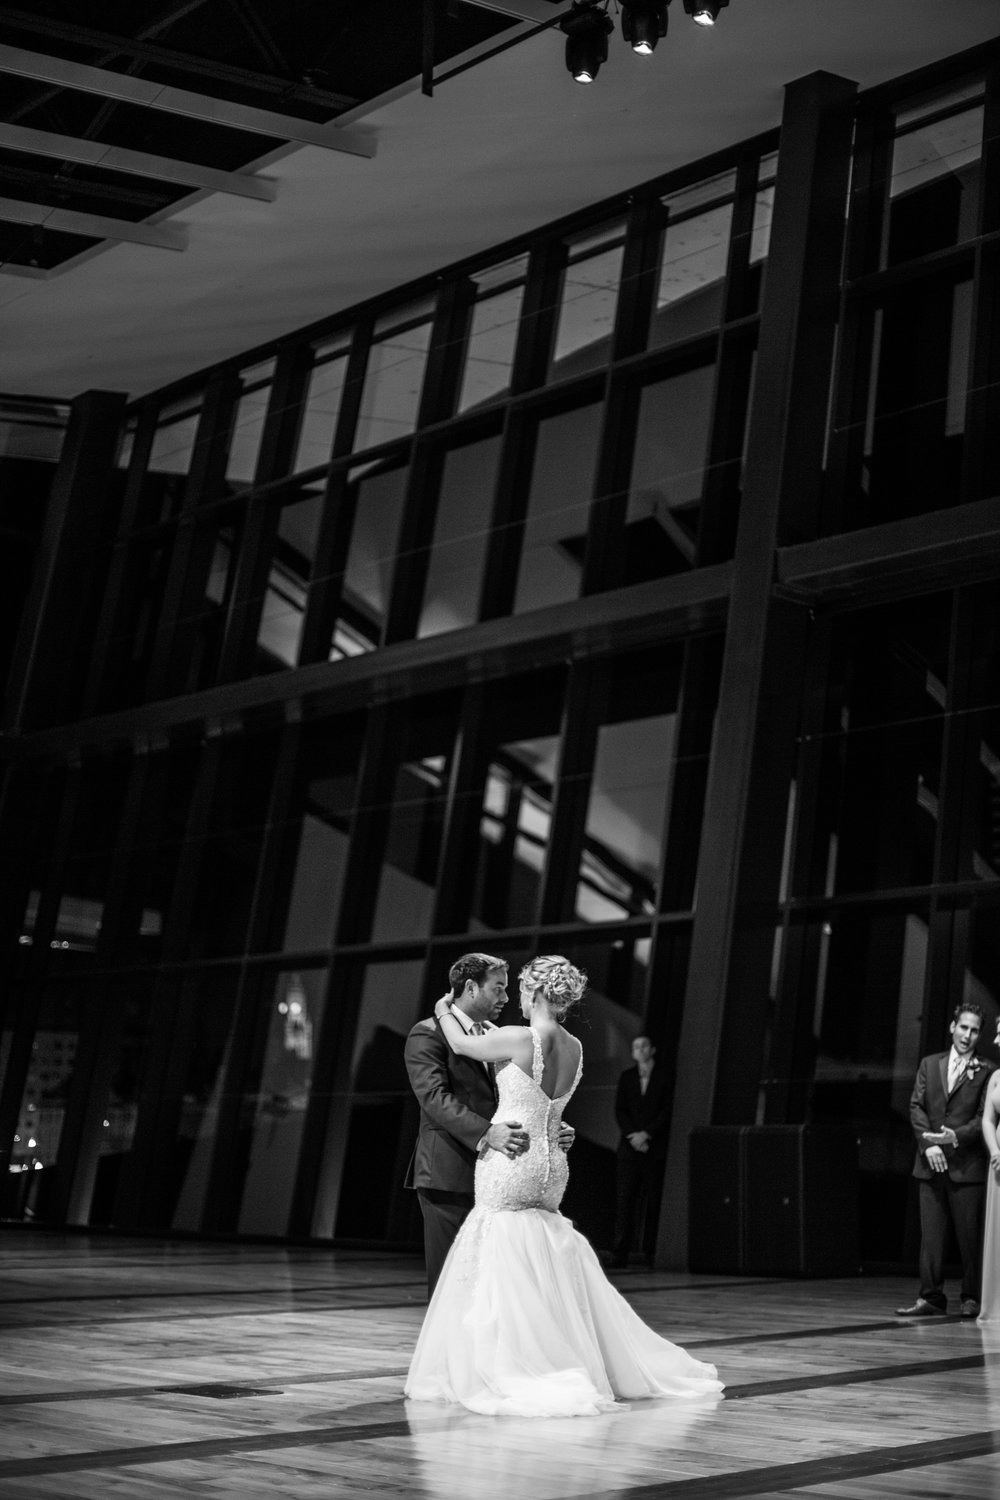 Leslie+David wedding - Details Nashville